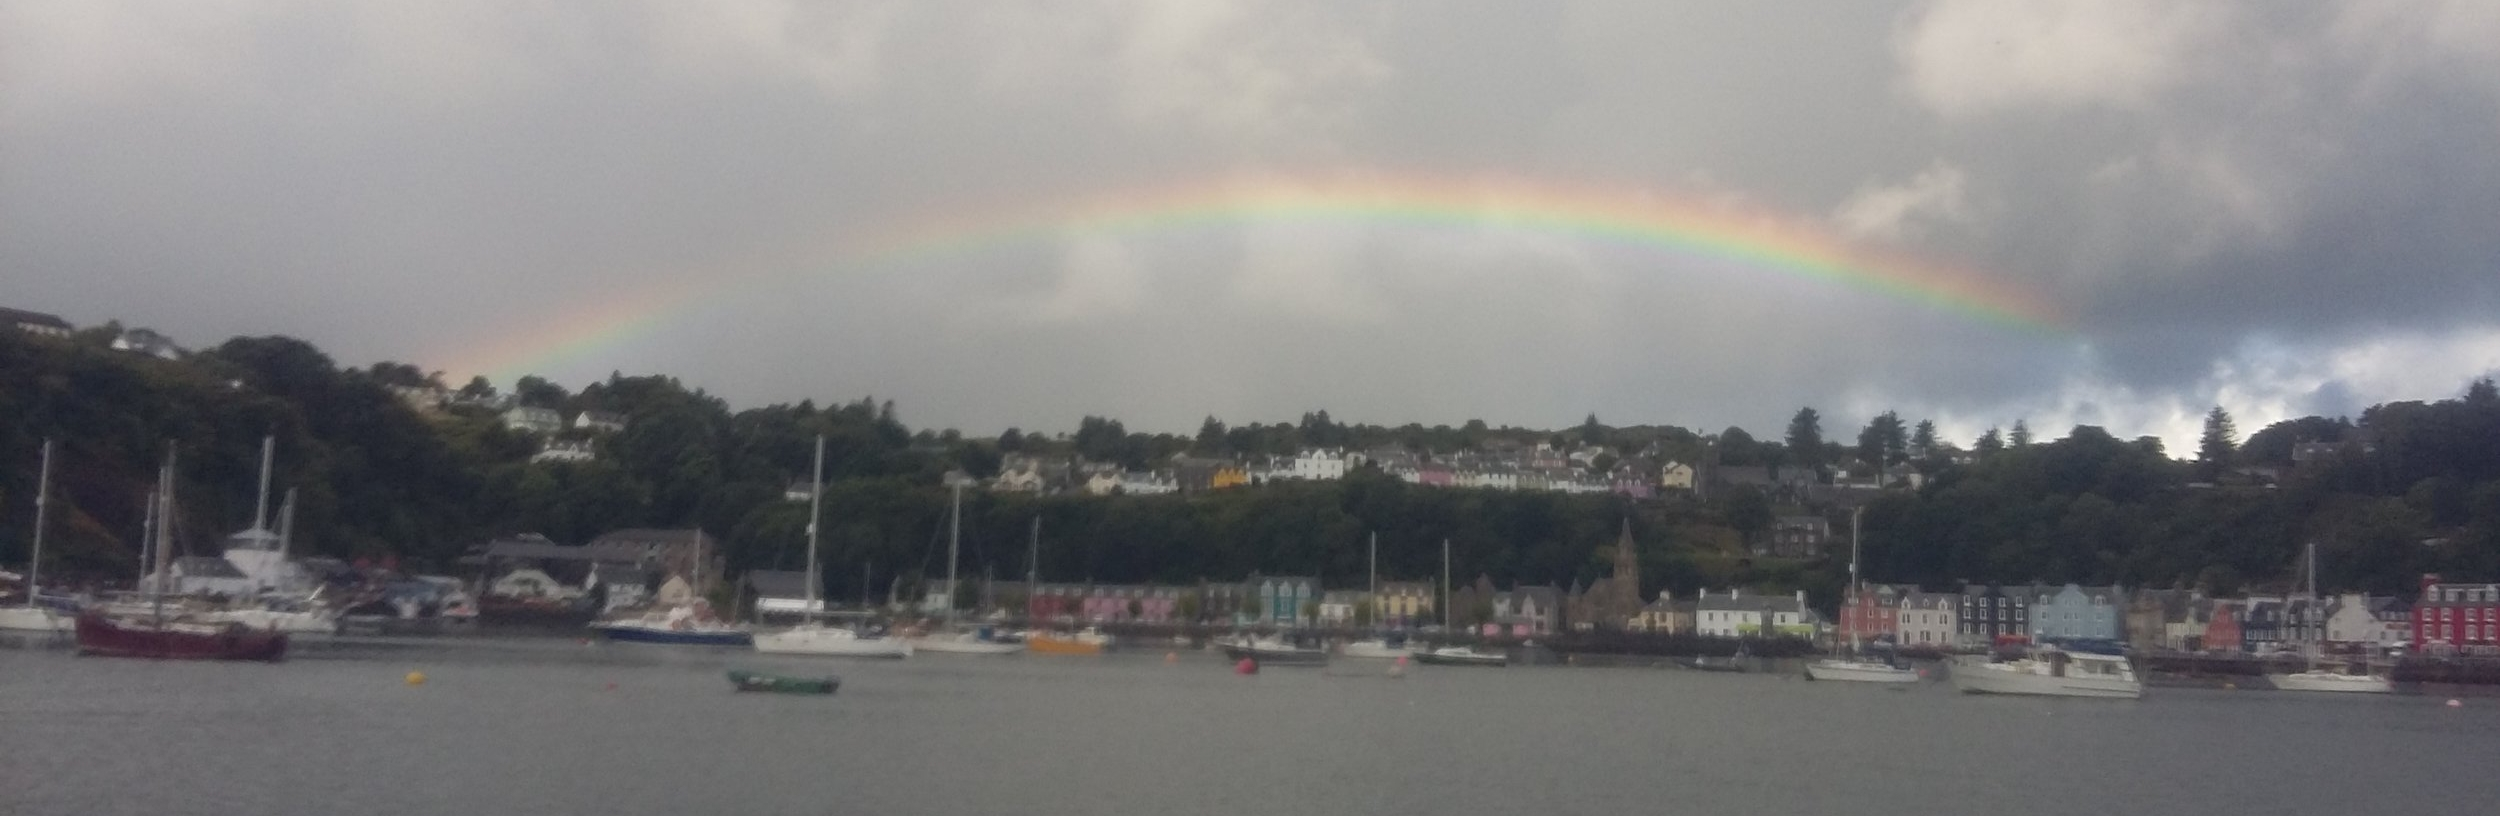 The 'silver lining' of Hebridean weather...lots of rainbows!